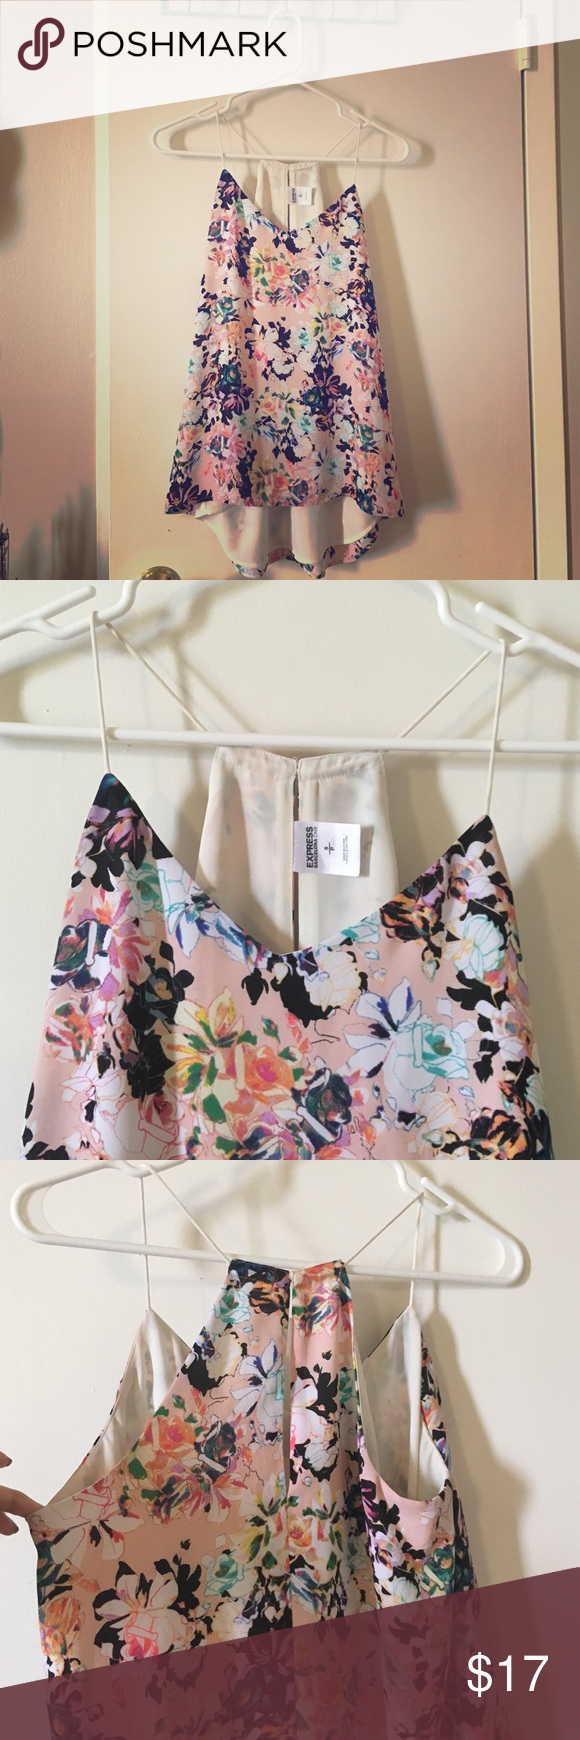 ✨SALE! Express floral top Lovely floral pattern summer top from Express Express Tops